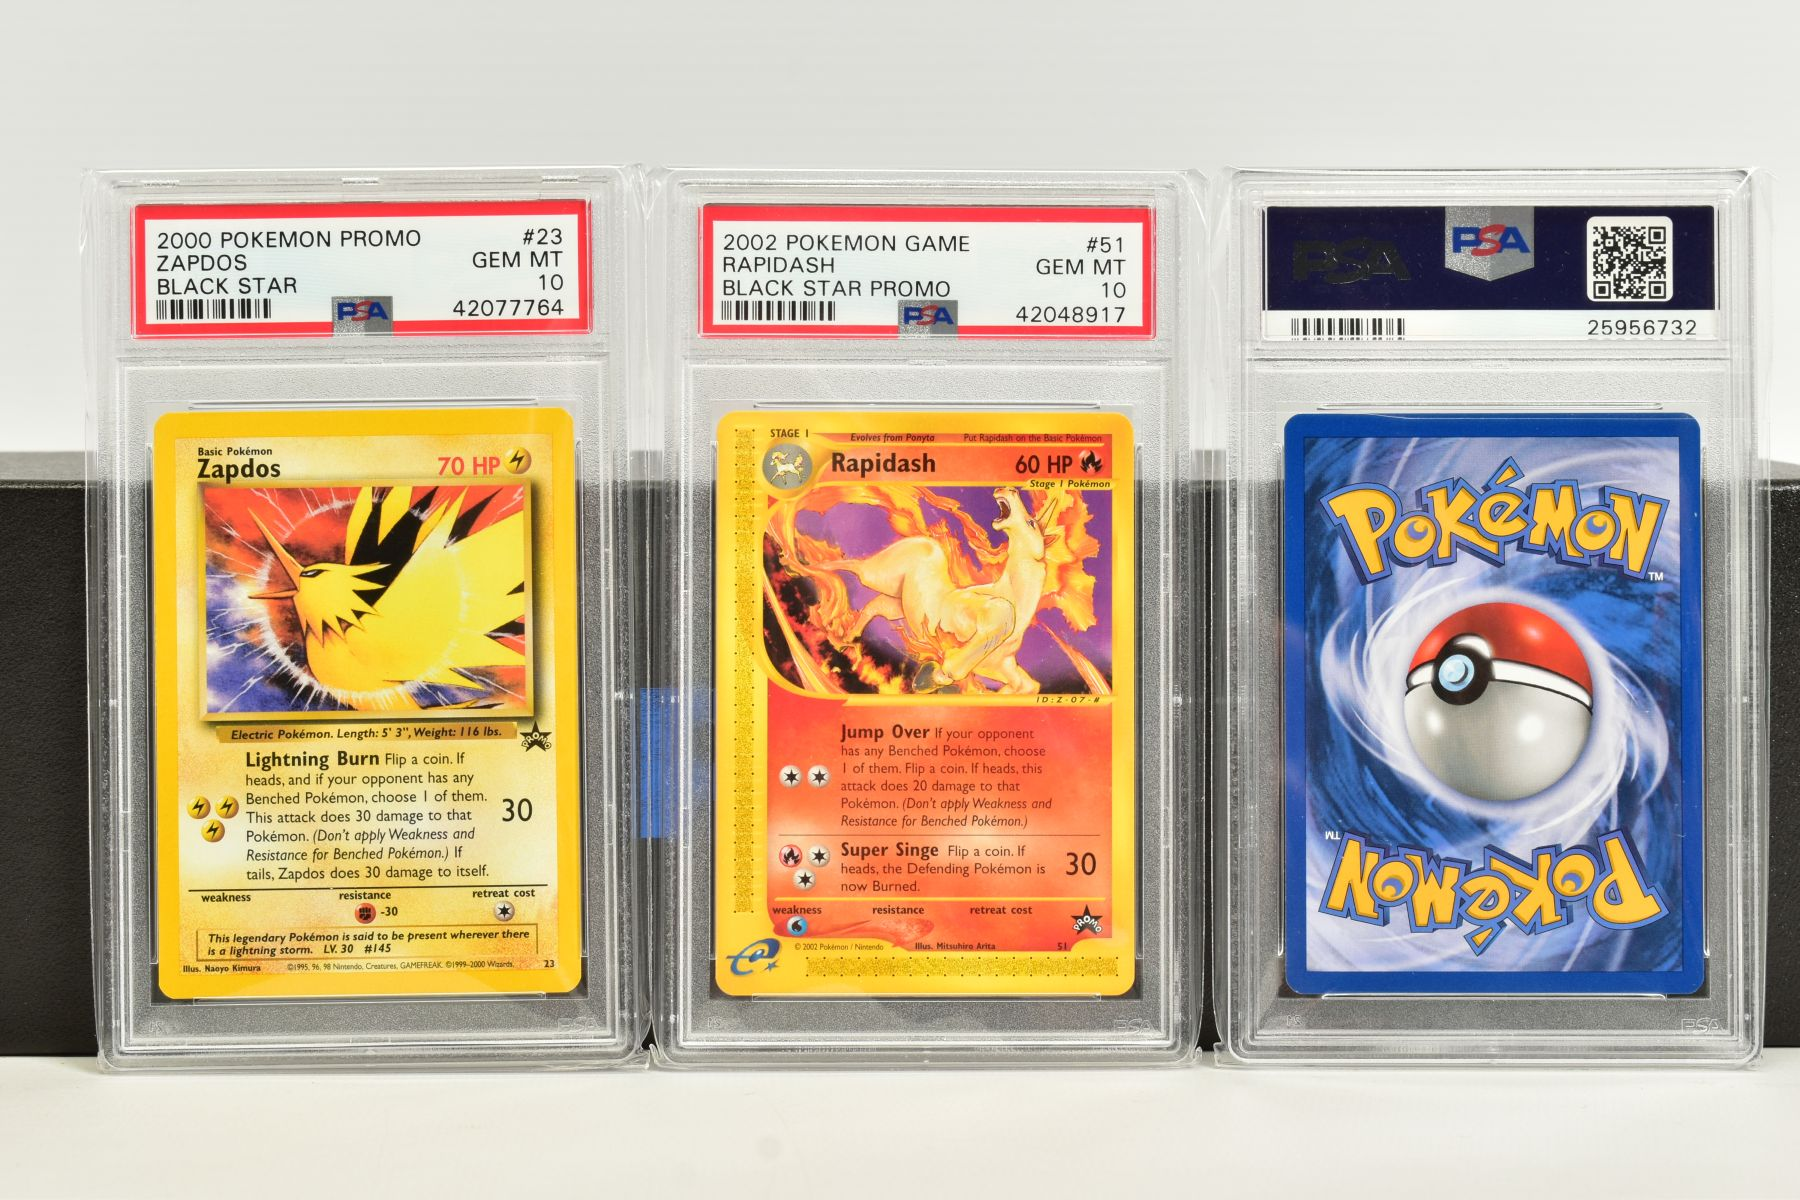 A QUANTITY OF PSA GRADED WIZARDS OF THE COAST POKEMON BLACK STAR PROMO CARDS, all date from 2000 - Image 8 of 8